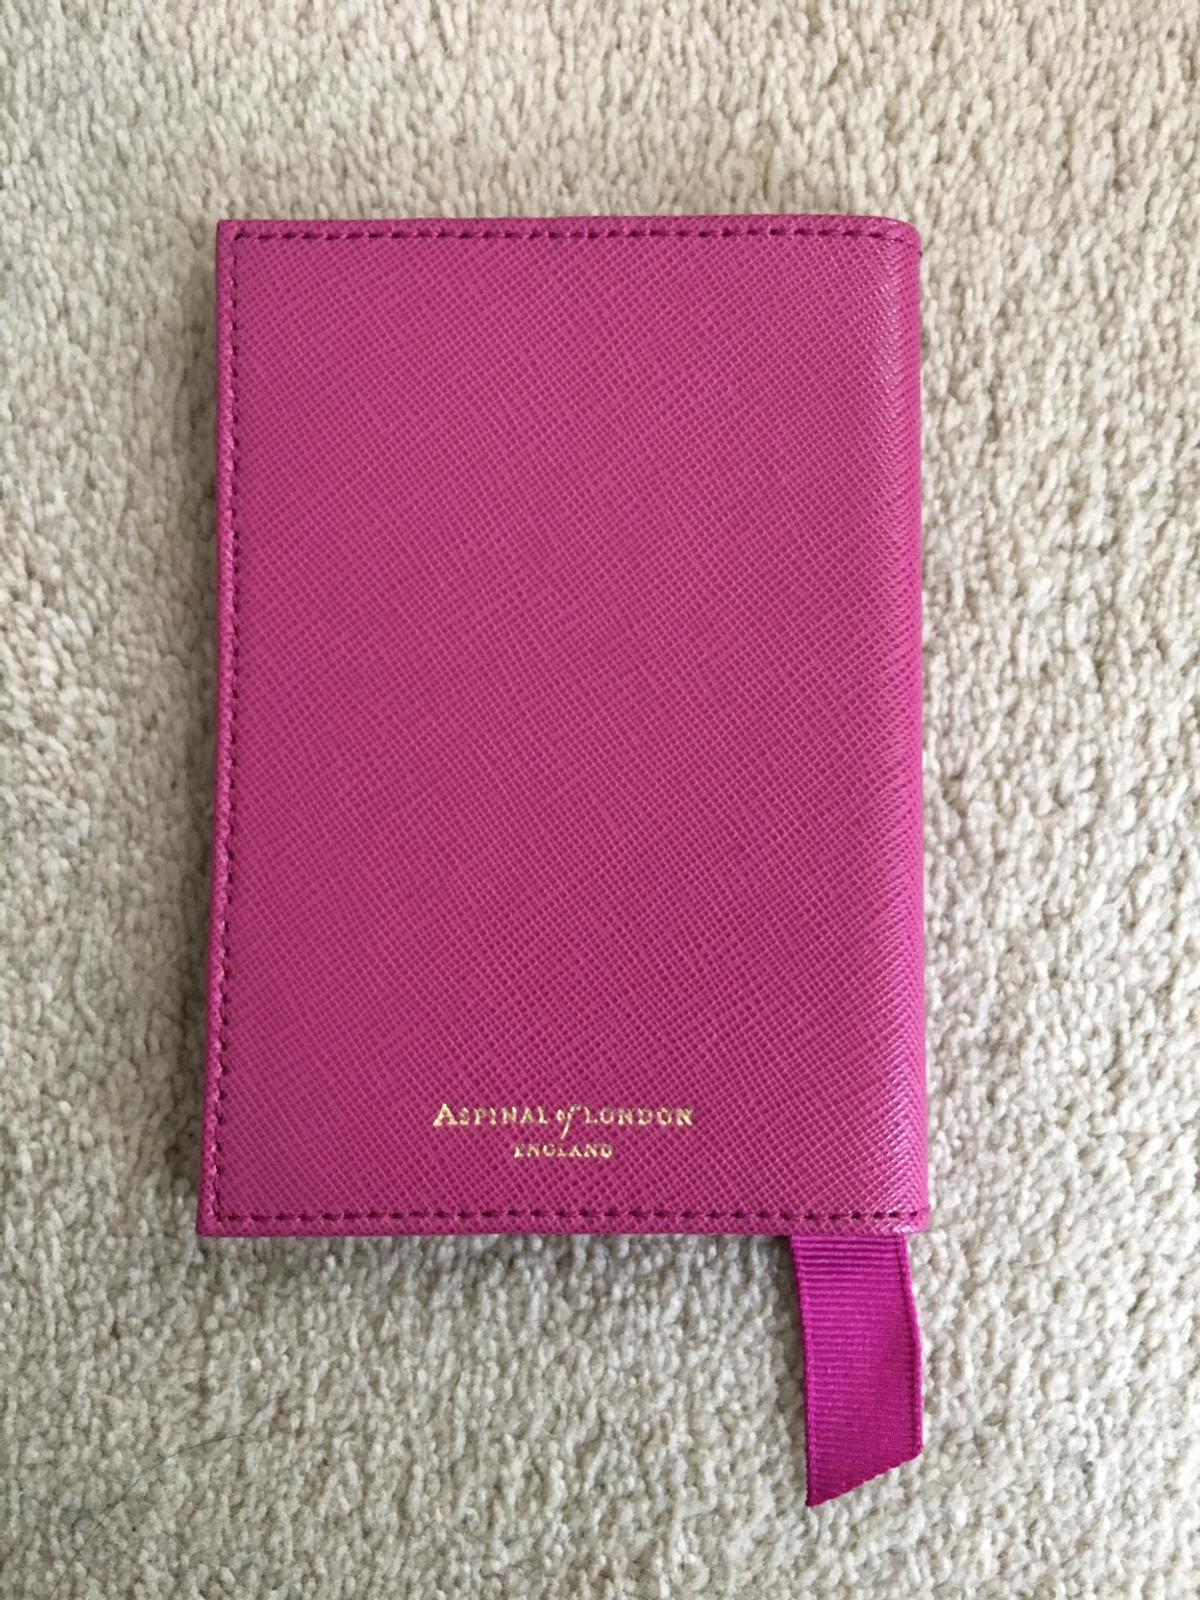 23bed40f1 Leather passport cover - Aspinal of London in W4 London for £25.00 ...